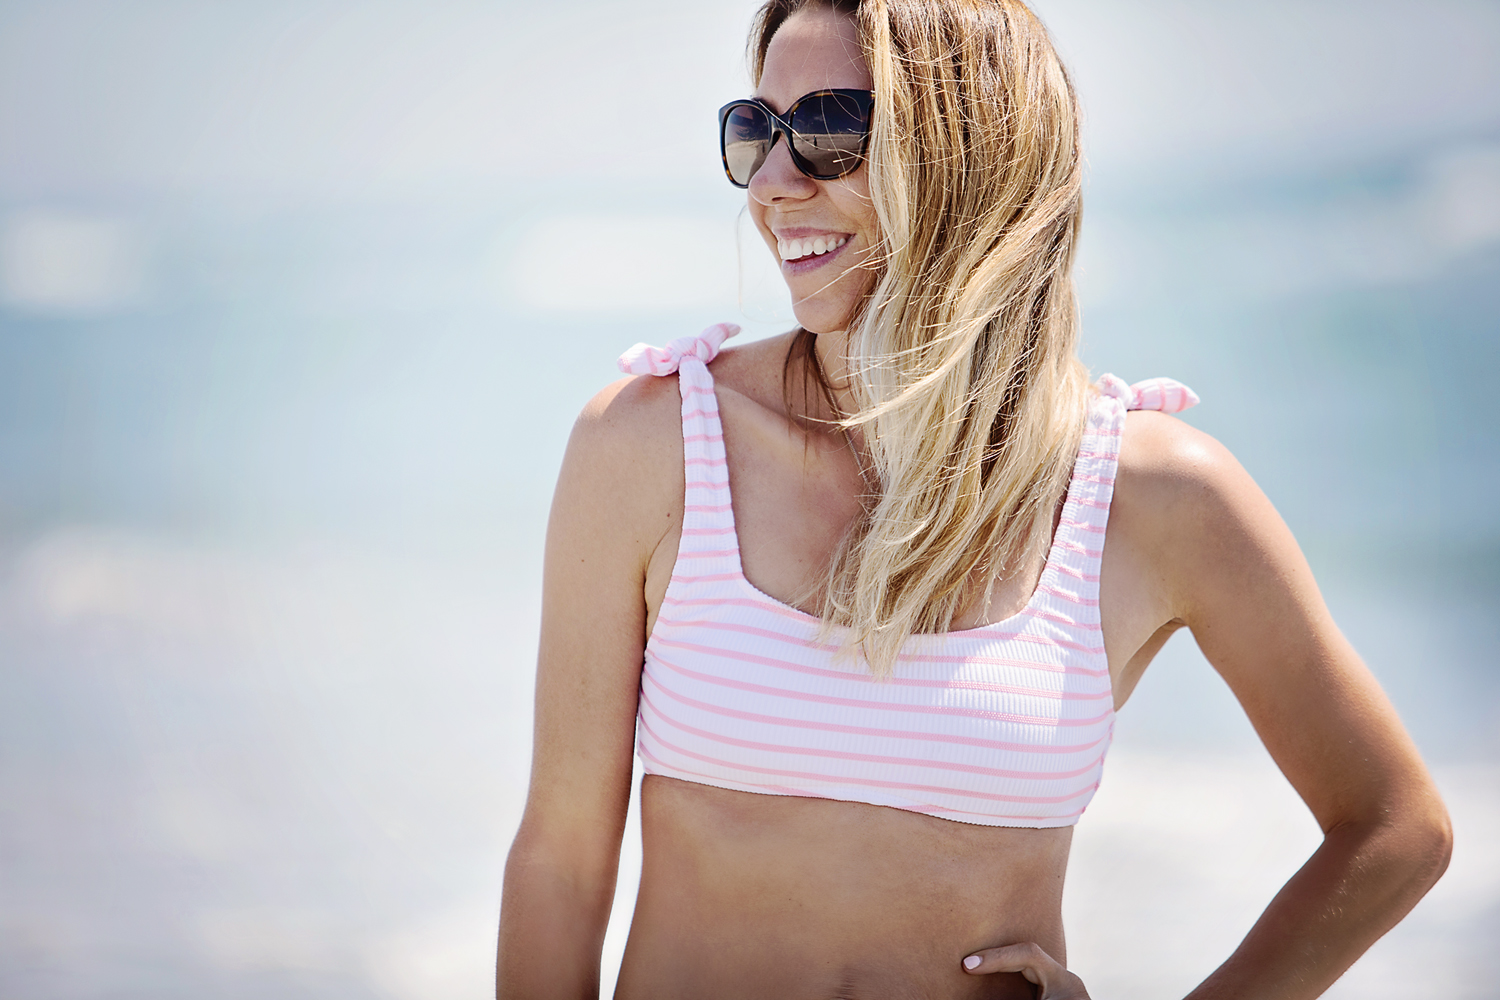 The Motherchic wearing summer stripes bikini